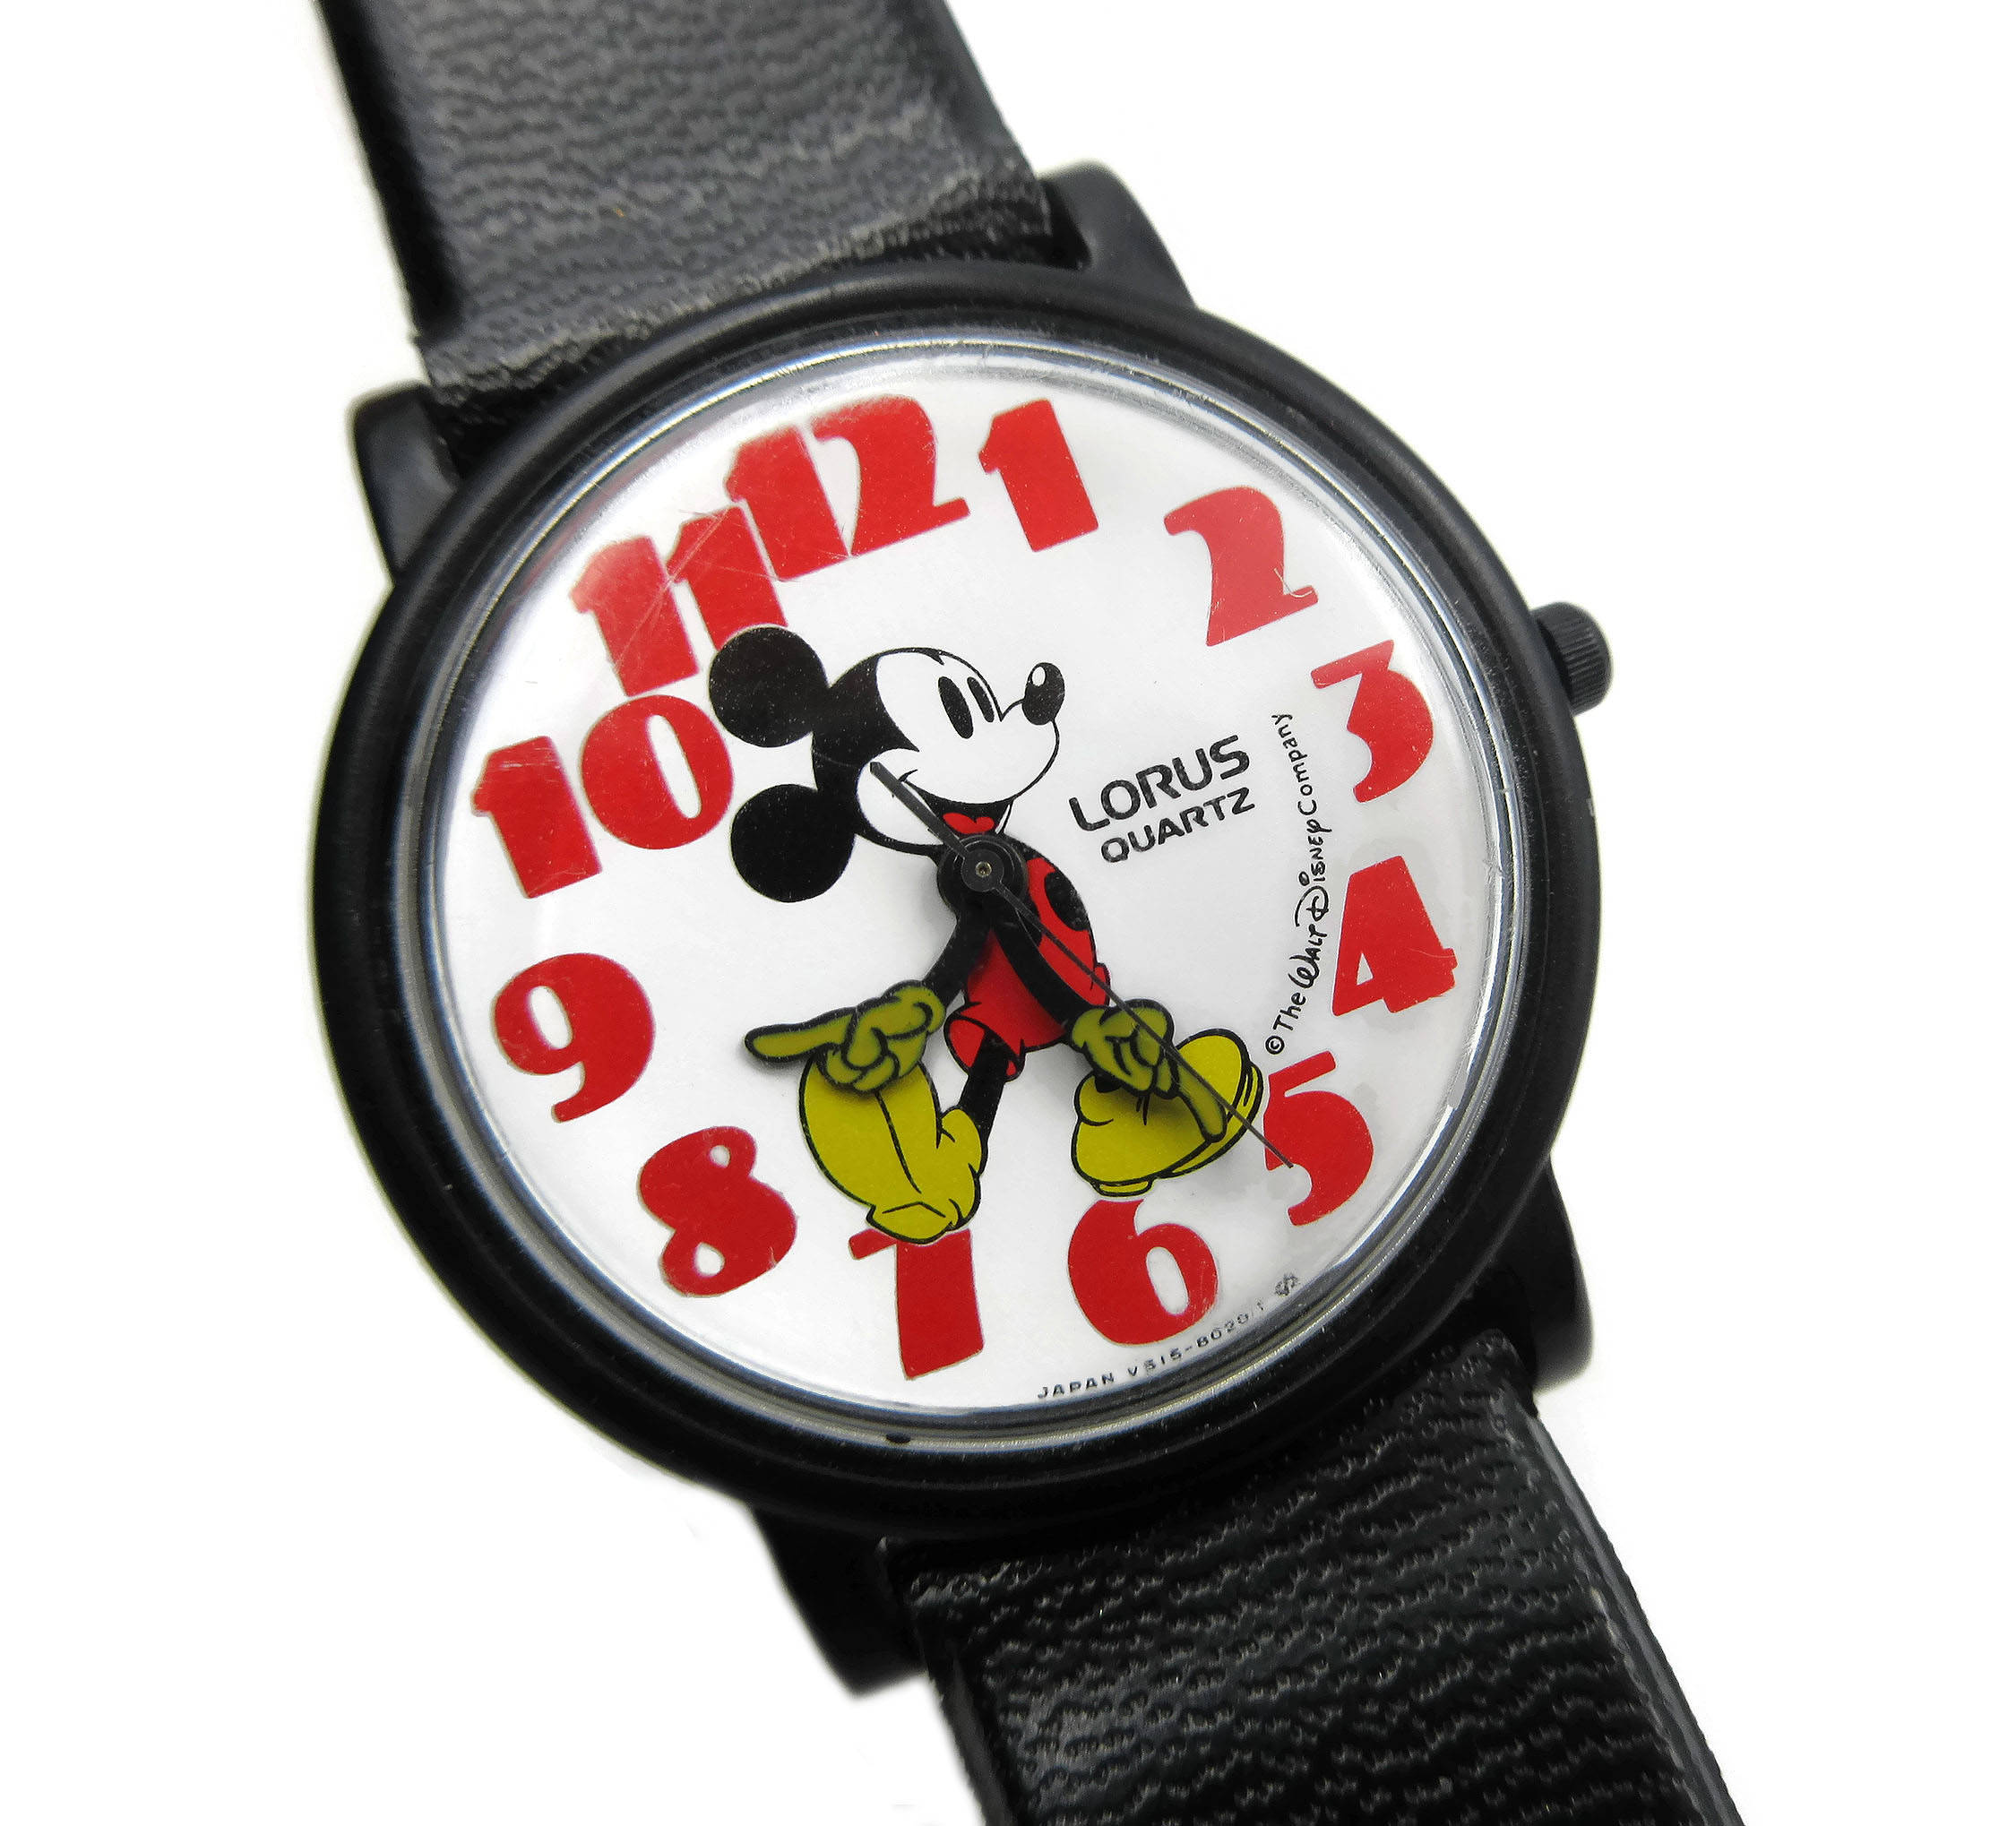 Lorus Quartz Mickey Mouse Watch from Zephyr Vintage